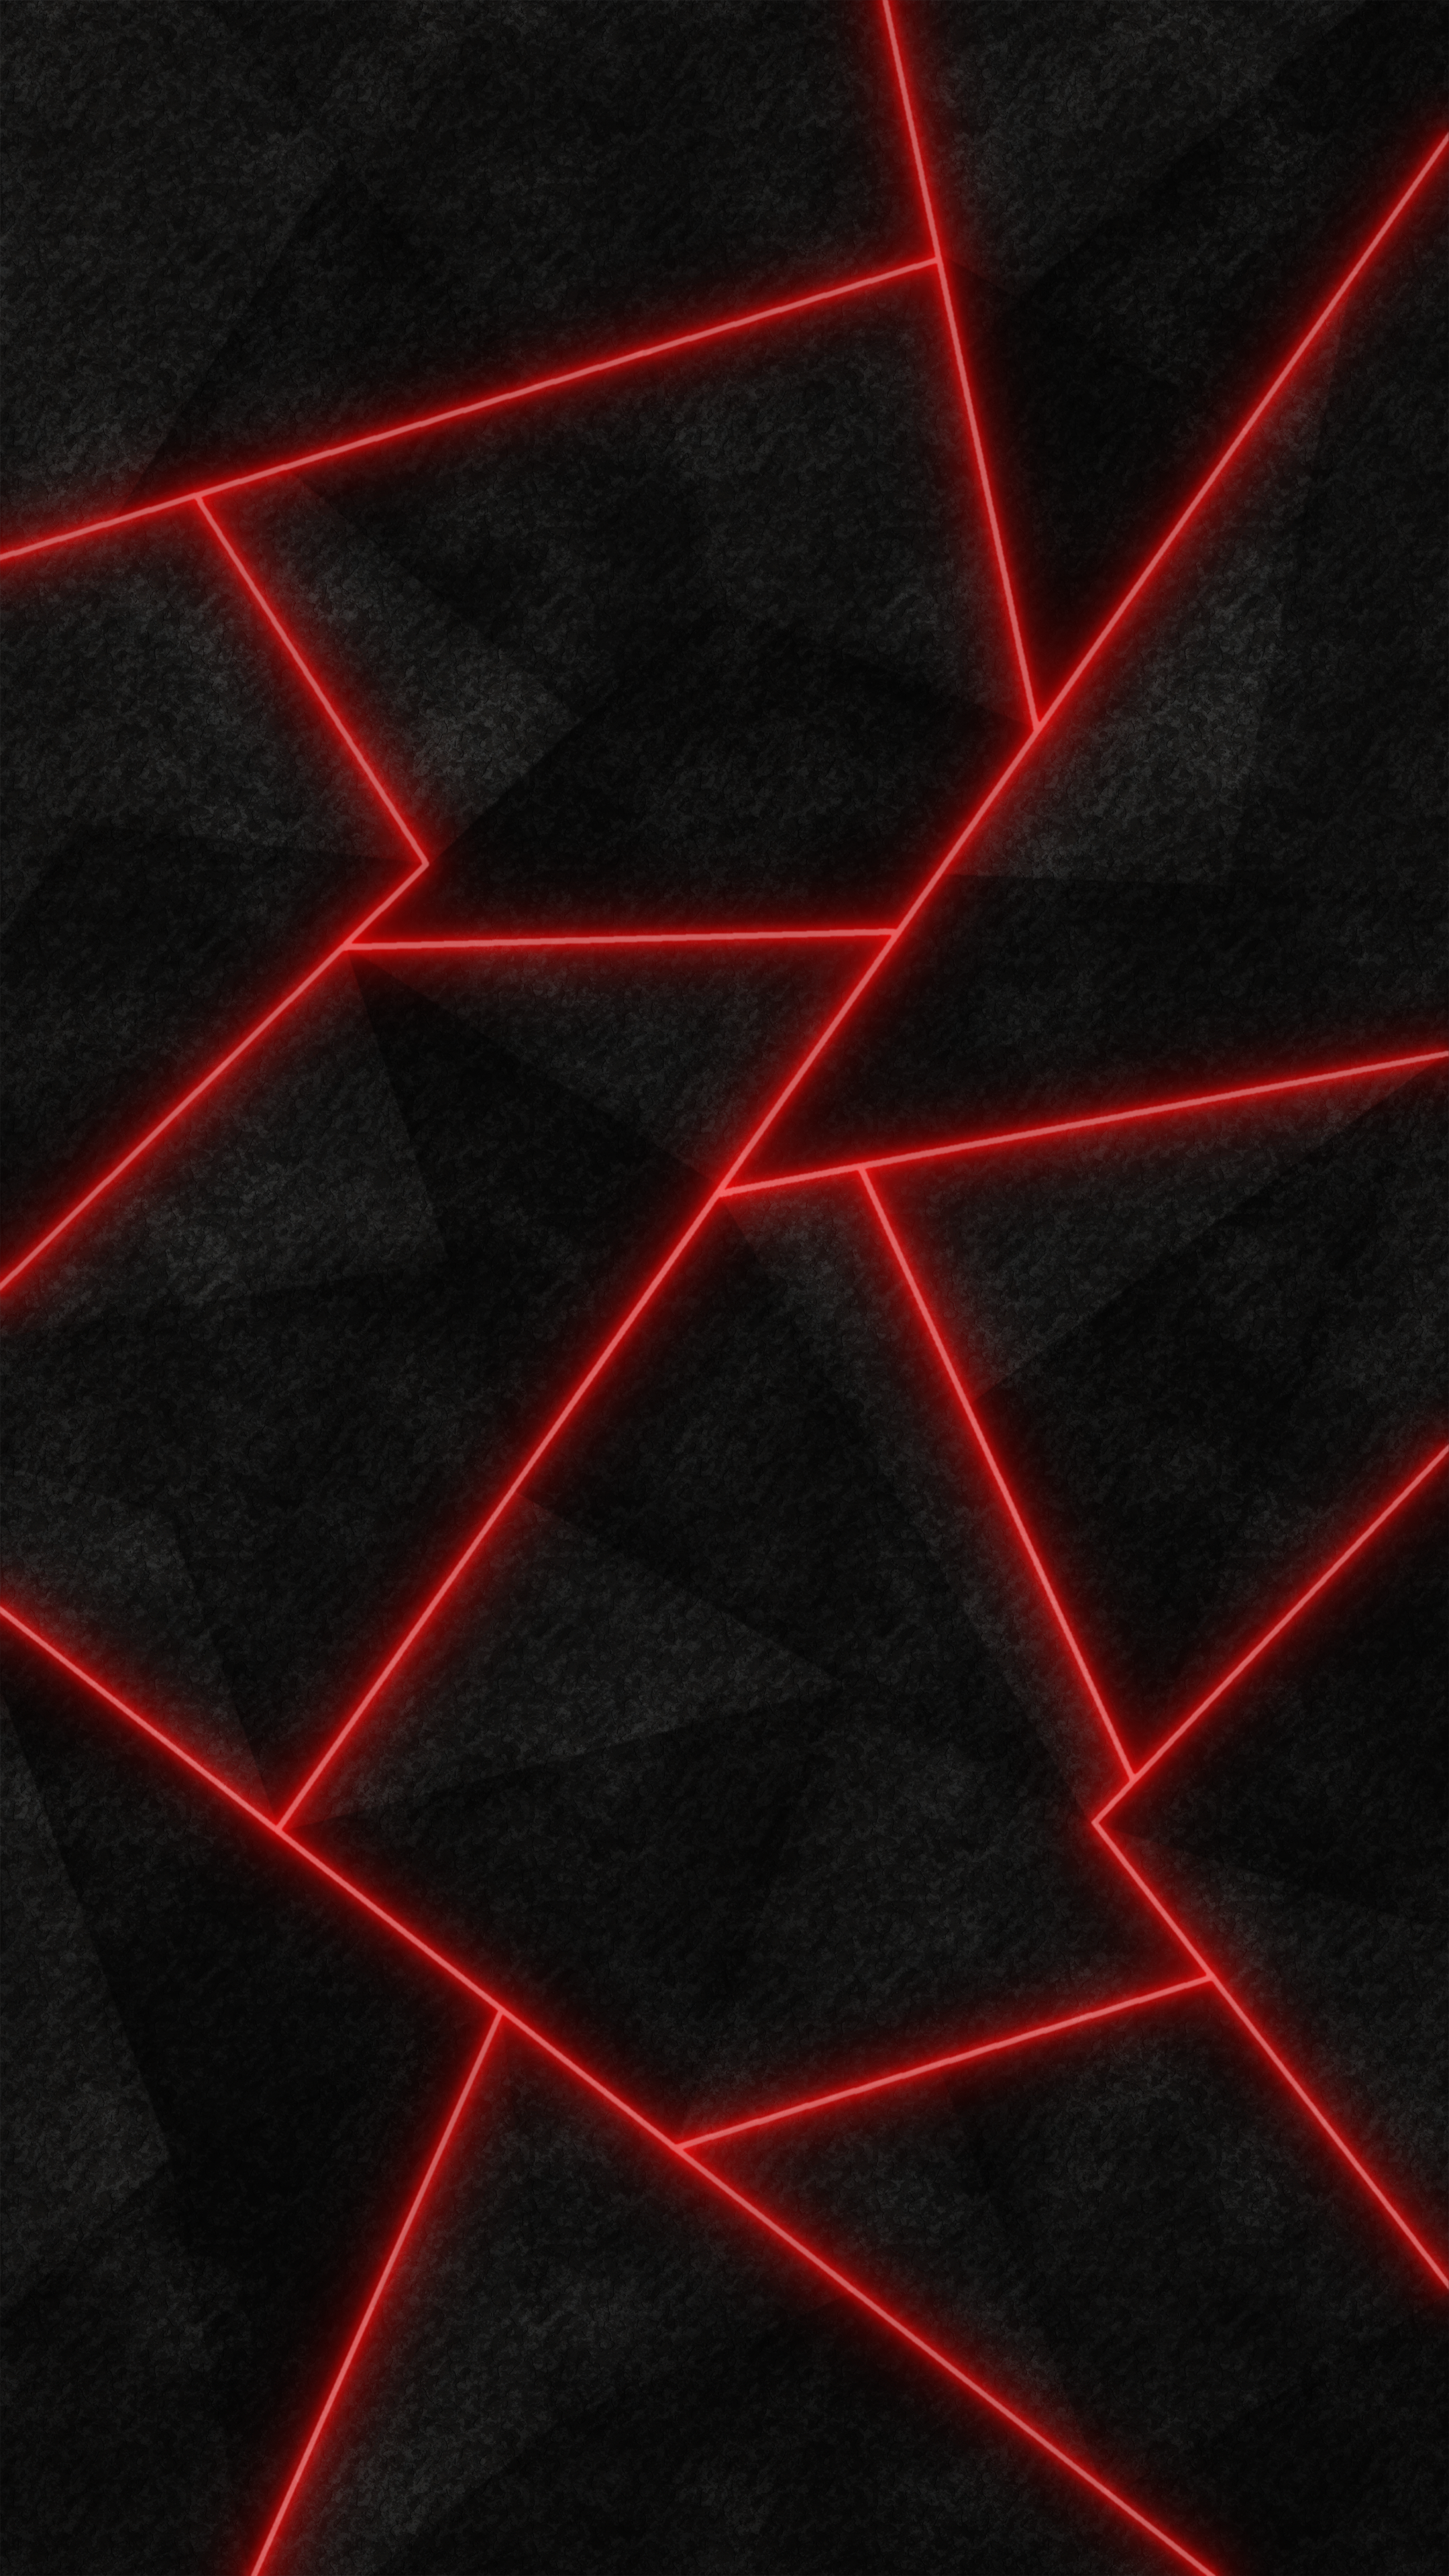 Abstractblack 2160x3840 Wallpaper Id 825159 Mobile Abyss